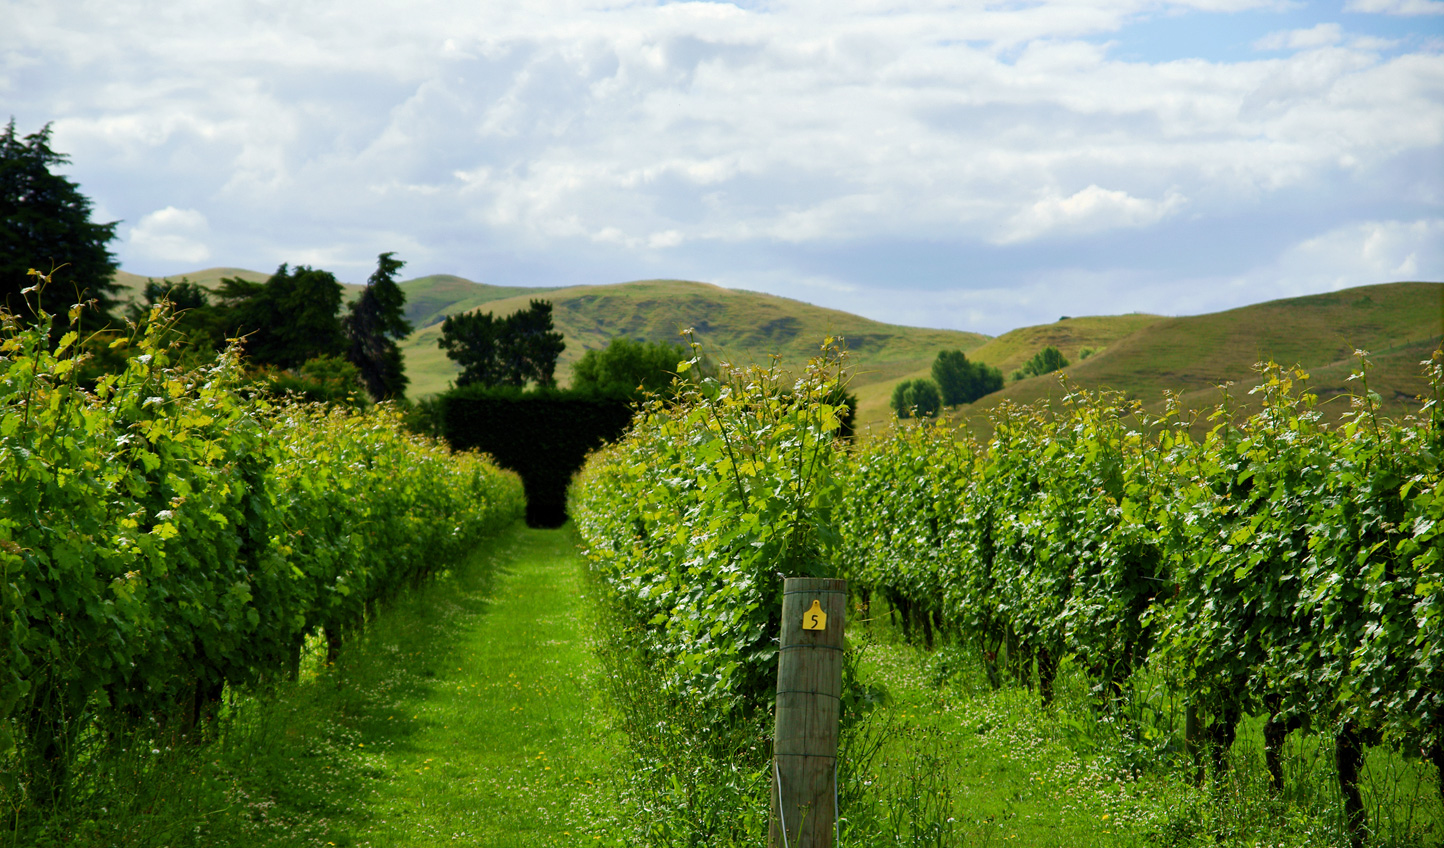 Sample the fine wines New Zealand is so renowned for